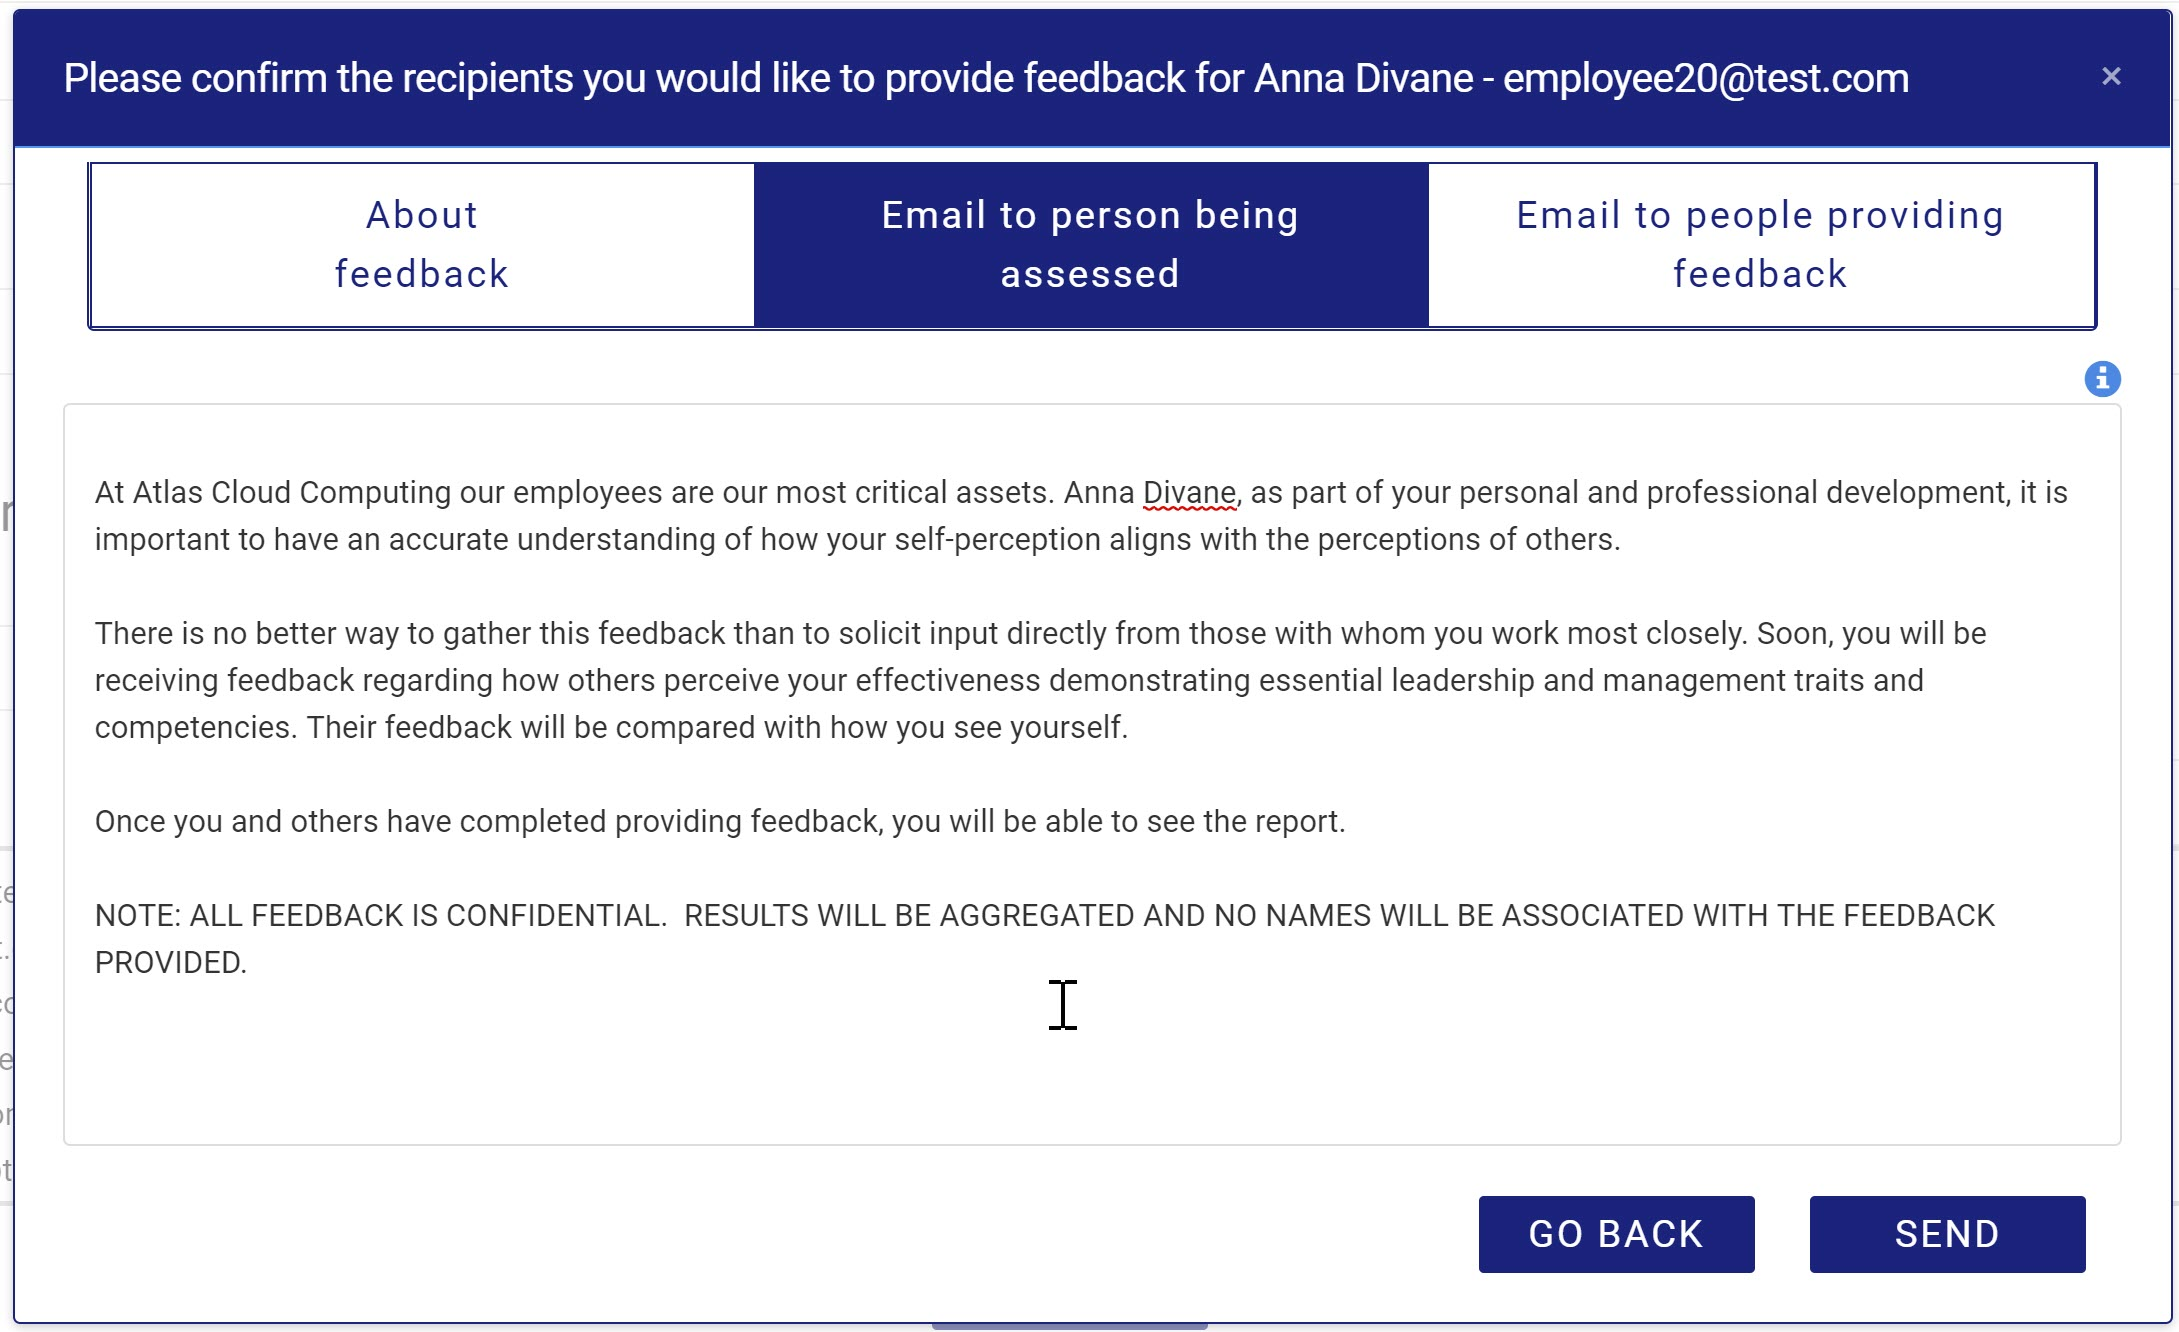 2020-07-05_Setting Up Feedback email to person being assessed